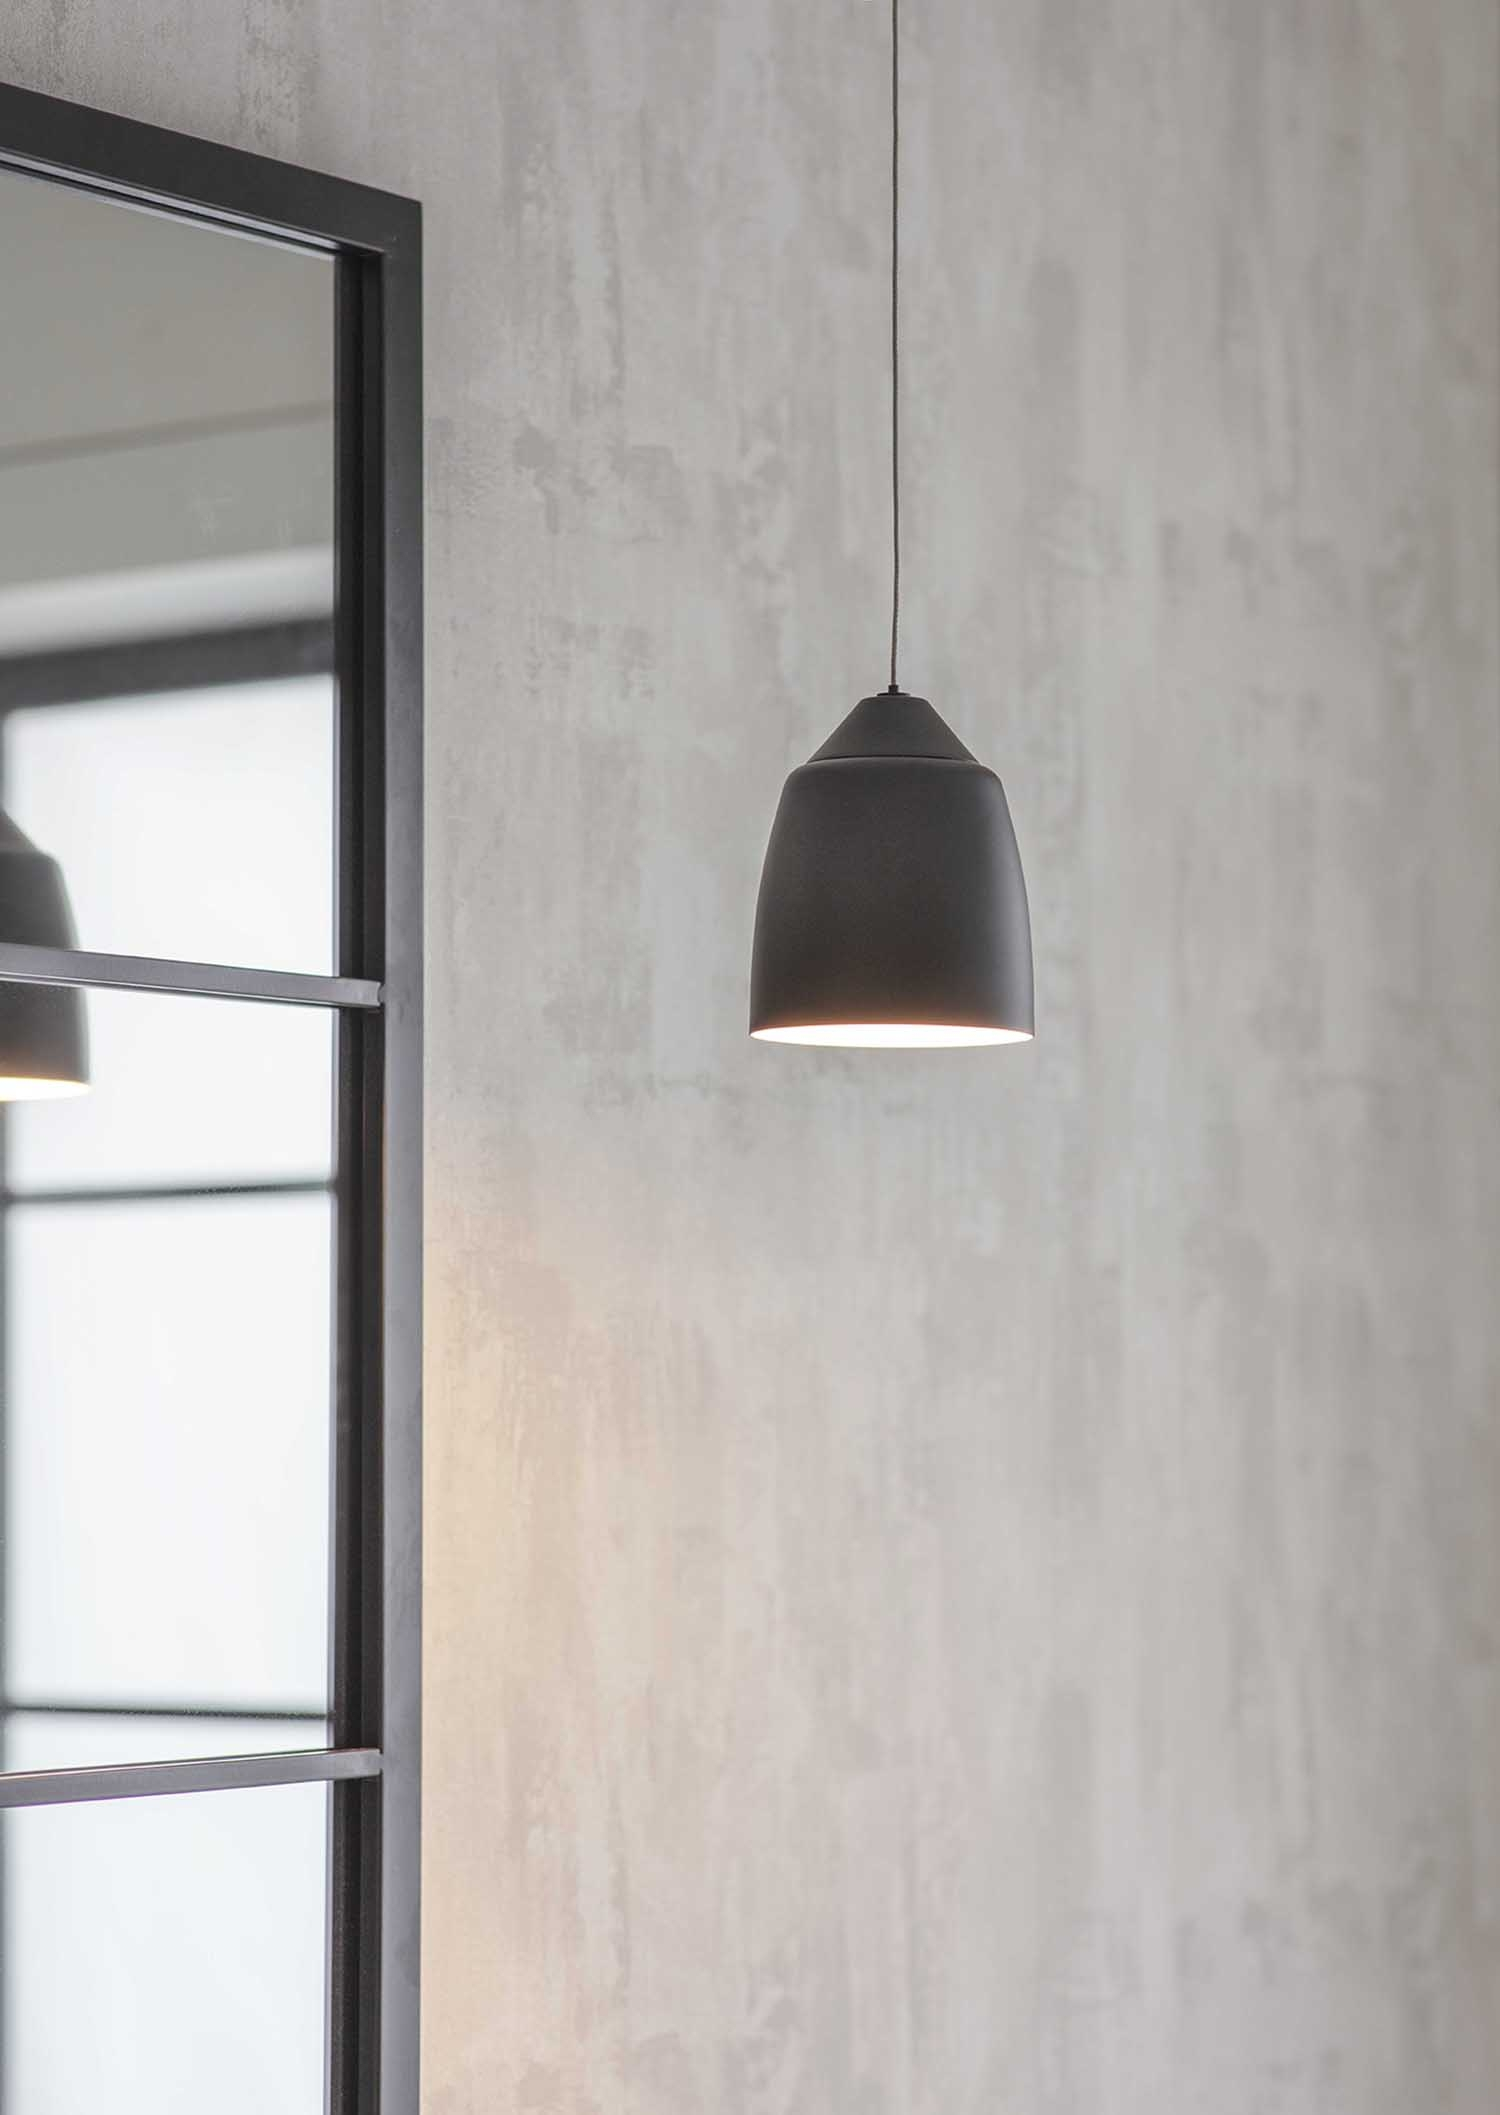 Image of Garden Trading Adelphi Bathroom Pendant Light